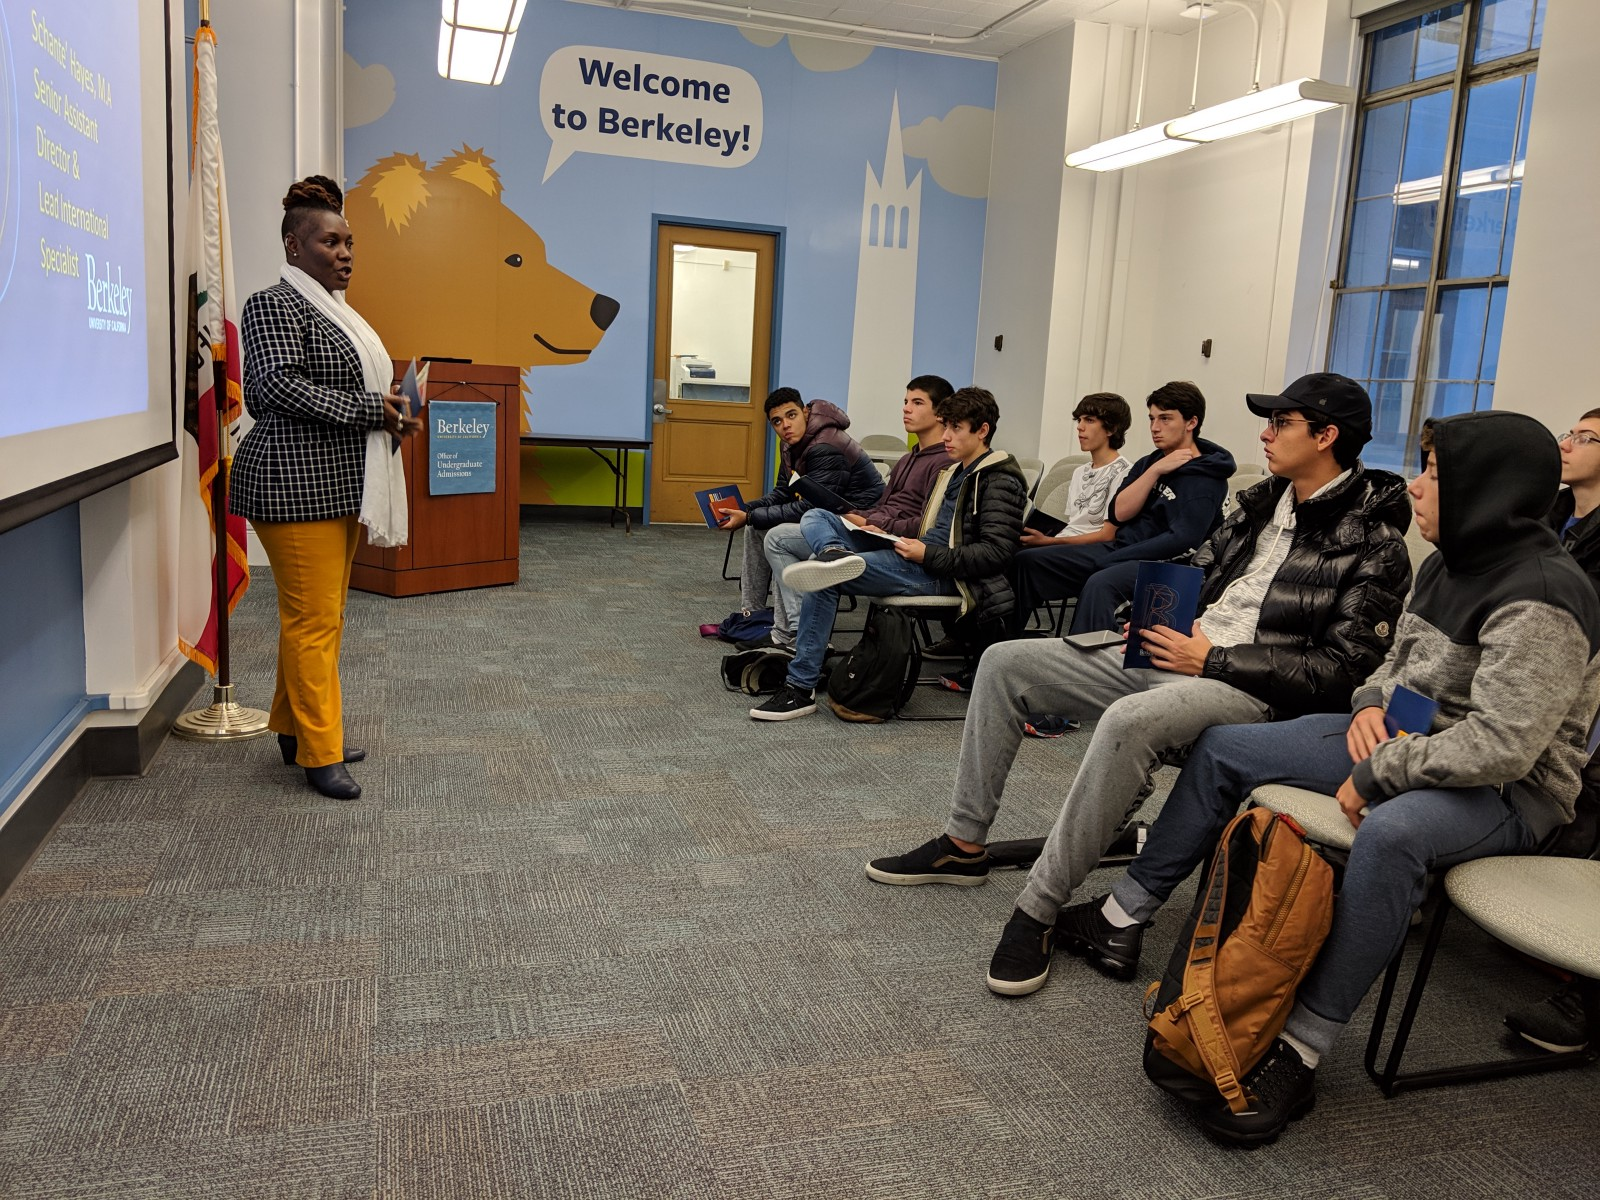 Schanté Hayes, head of international admissions at Berkeley, talking to our Winter 19' cohort